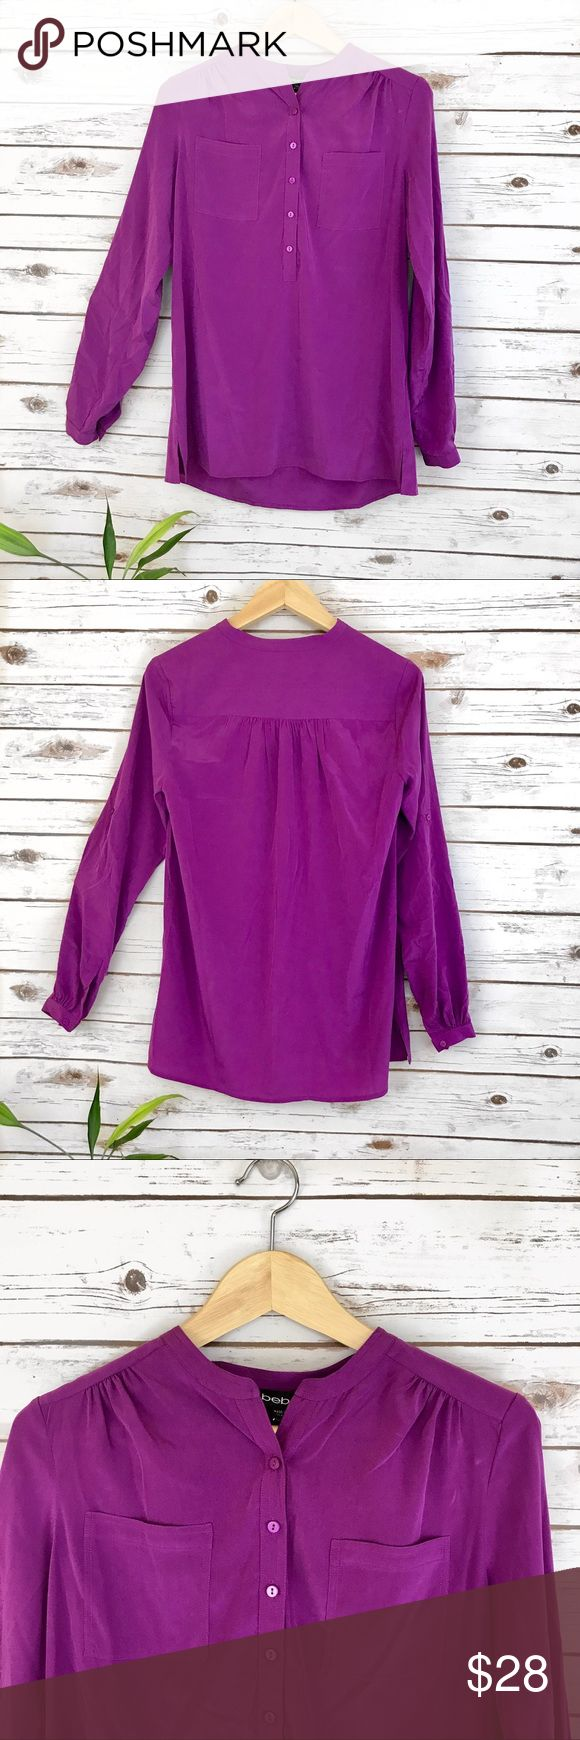 """Bebe Fuschia Pink Long Sleeves Top Bebe Valerie Crepe Silk Tunic. 2 front pockets. New with tag. From smoke free and pet free home. Has a small holes on the left sleeves but barely noticeable. See pictures for details.  Measurements laid flat: Armpit to armpit- 18"""" Length- 26"""" Sleeve length- 23""""  Make an Offer! No low-balling please. 😊❤️ bebe Tops Tunics"""